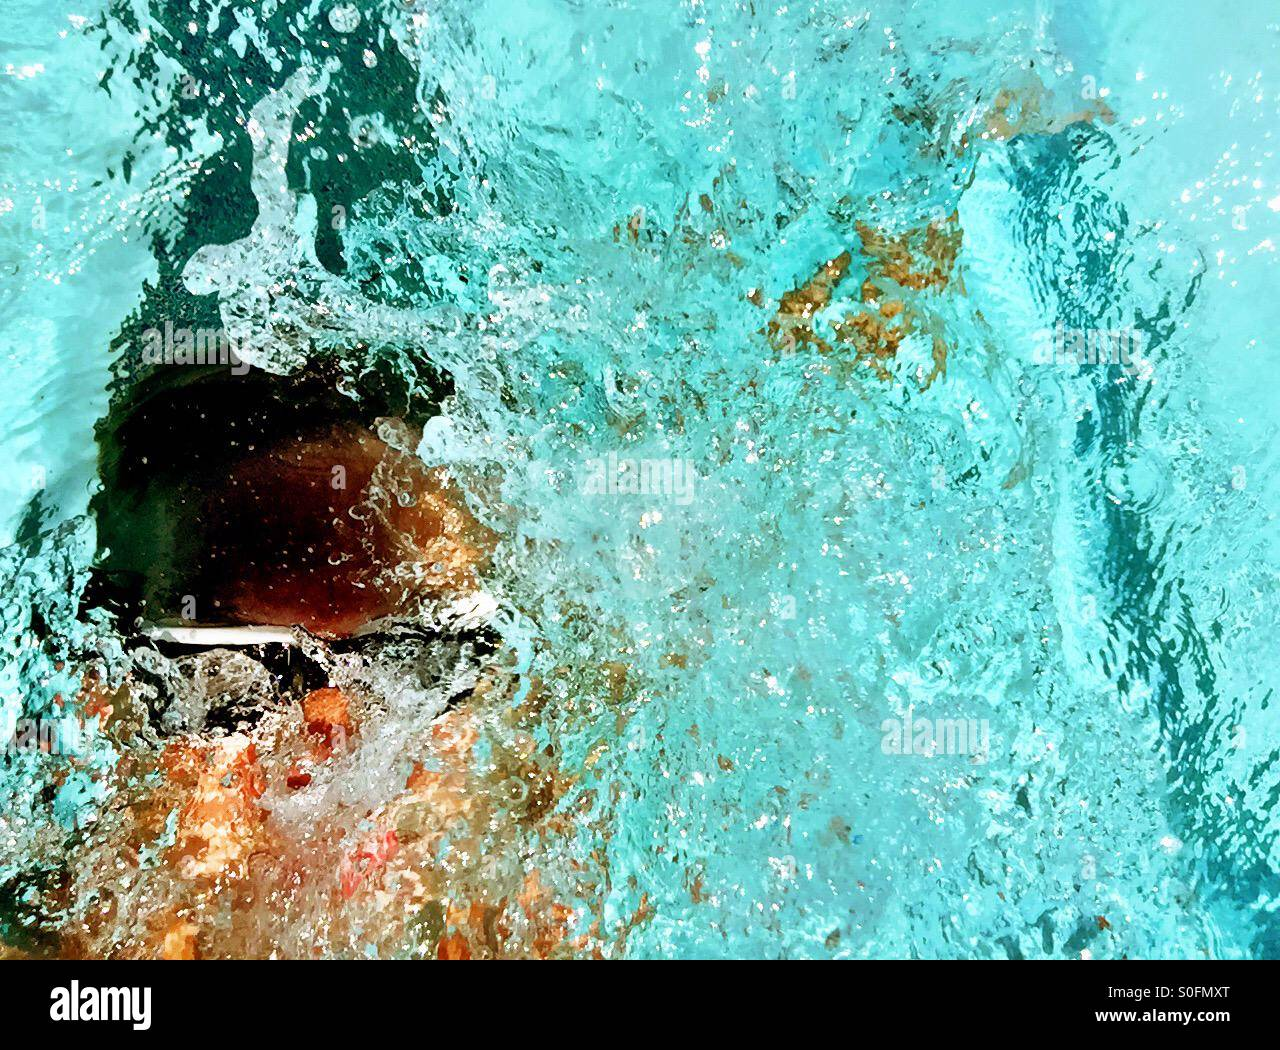 Closeup view above man swimming competition backstroke in an outdoor swimming pool. Sun glistening through wake - Stock Image